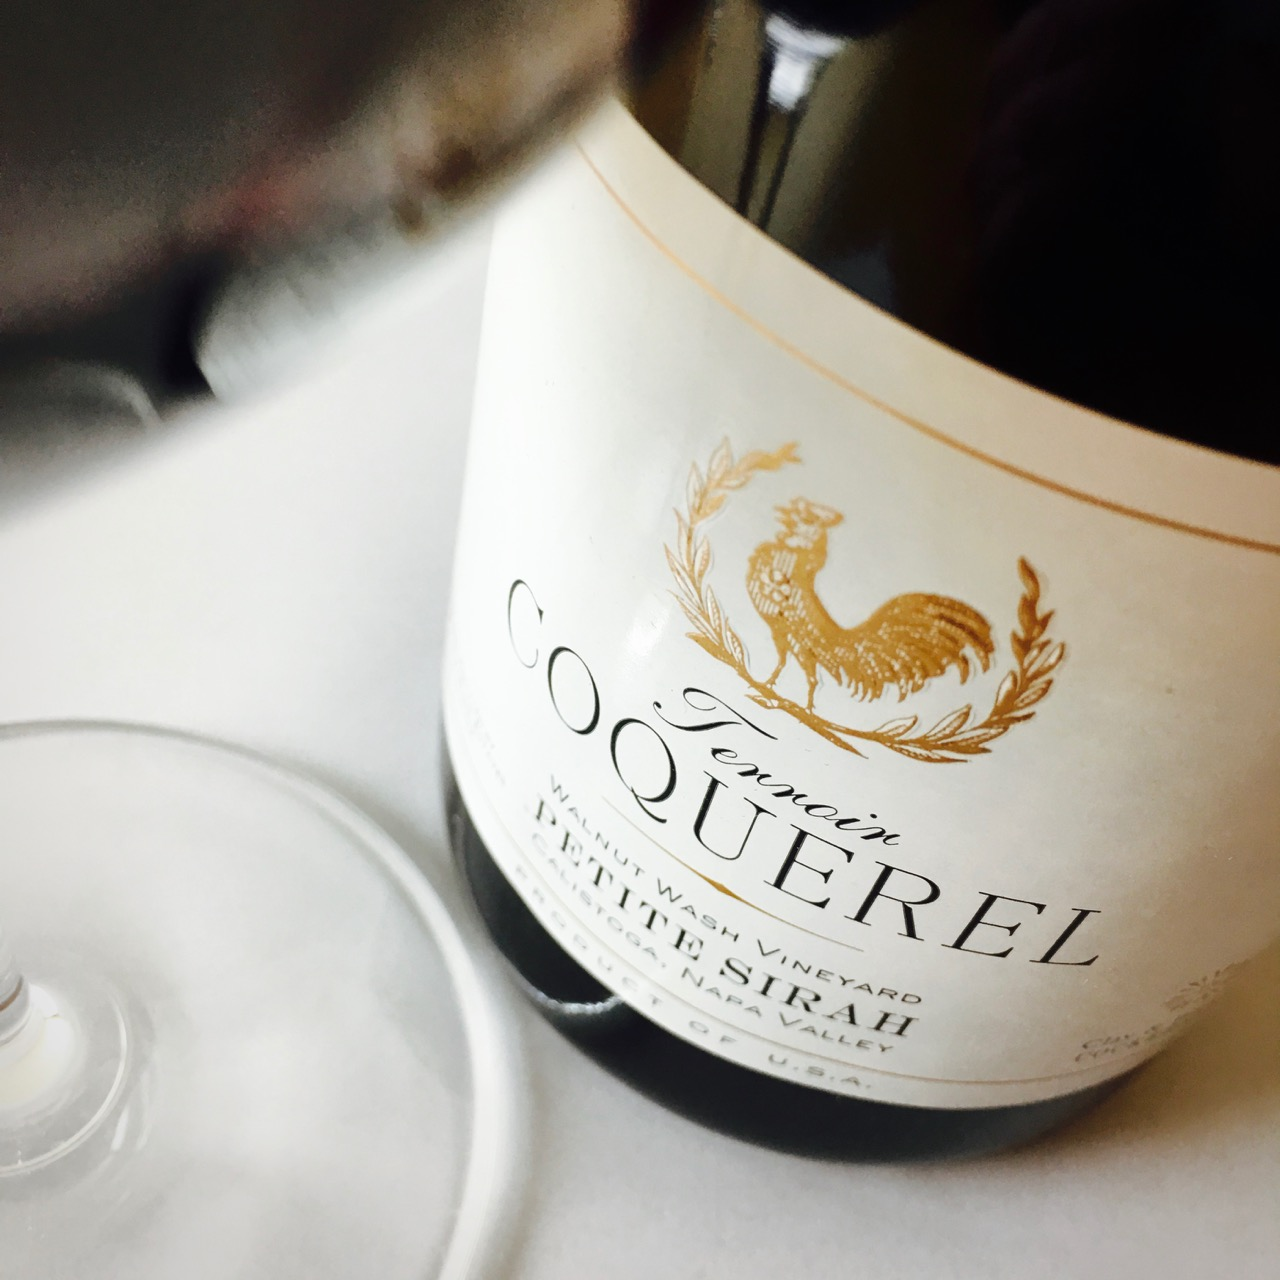 2012 Coquerel Family Wine Estates Petite Sirah Walnut Wash Vineyard Calistoga, Napa Valley